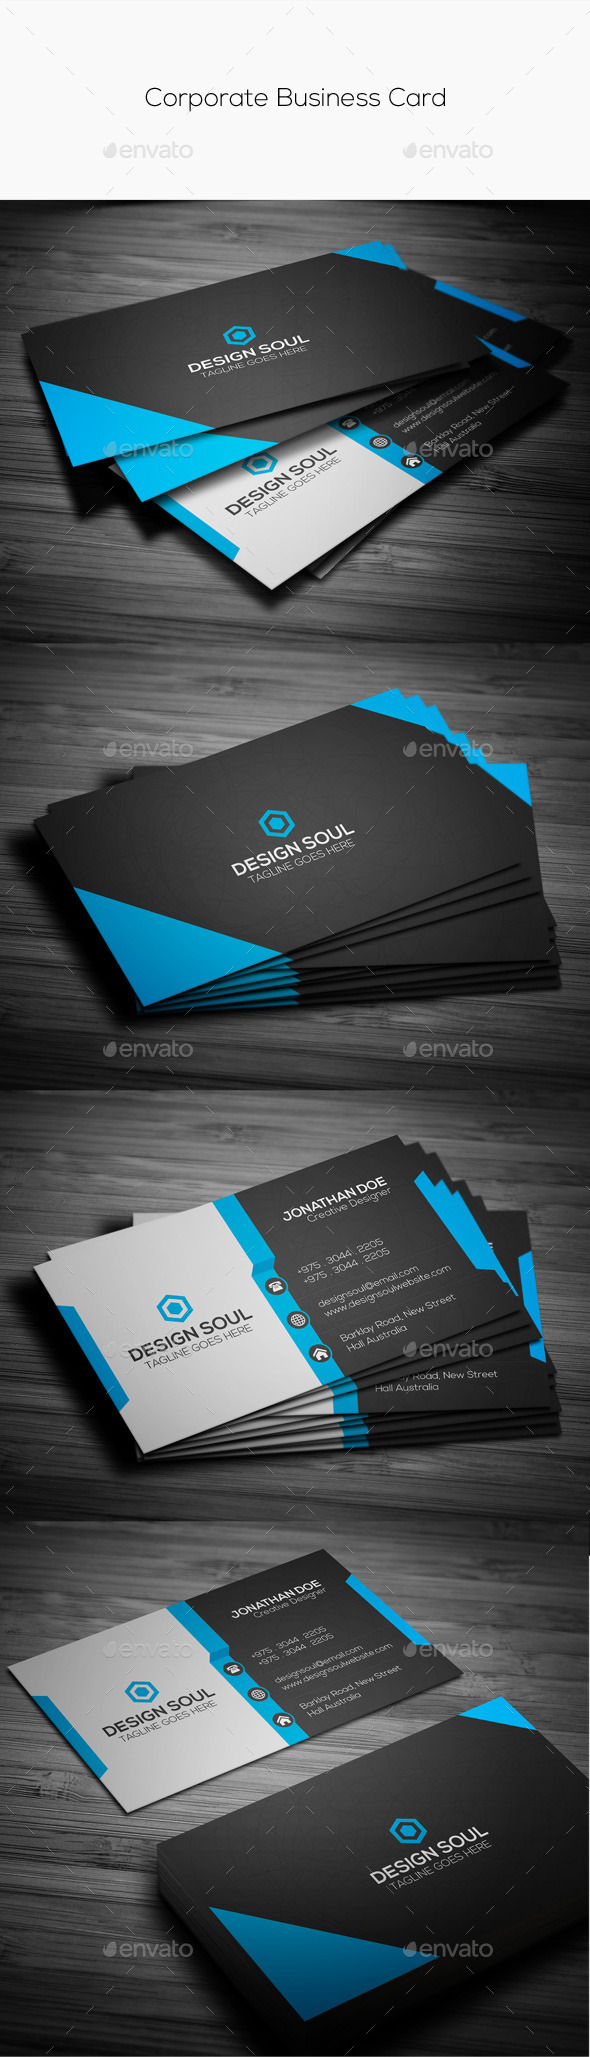 GraphicRiver Corporate Business Card 11259317